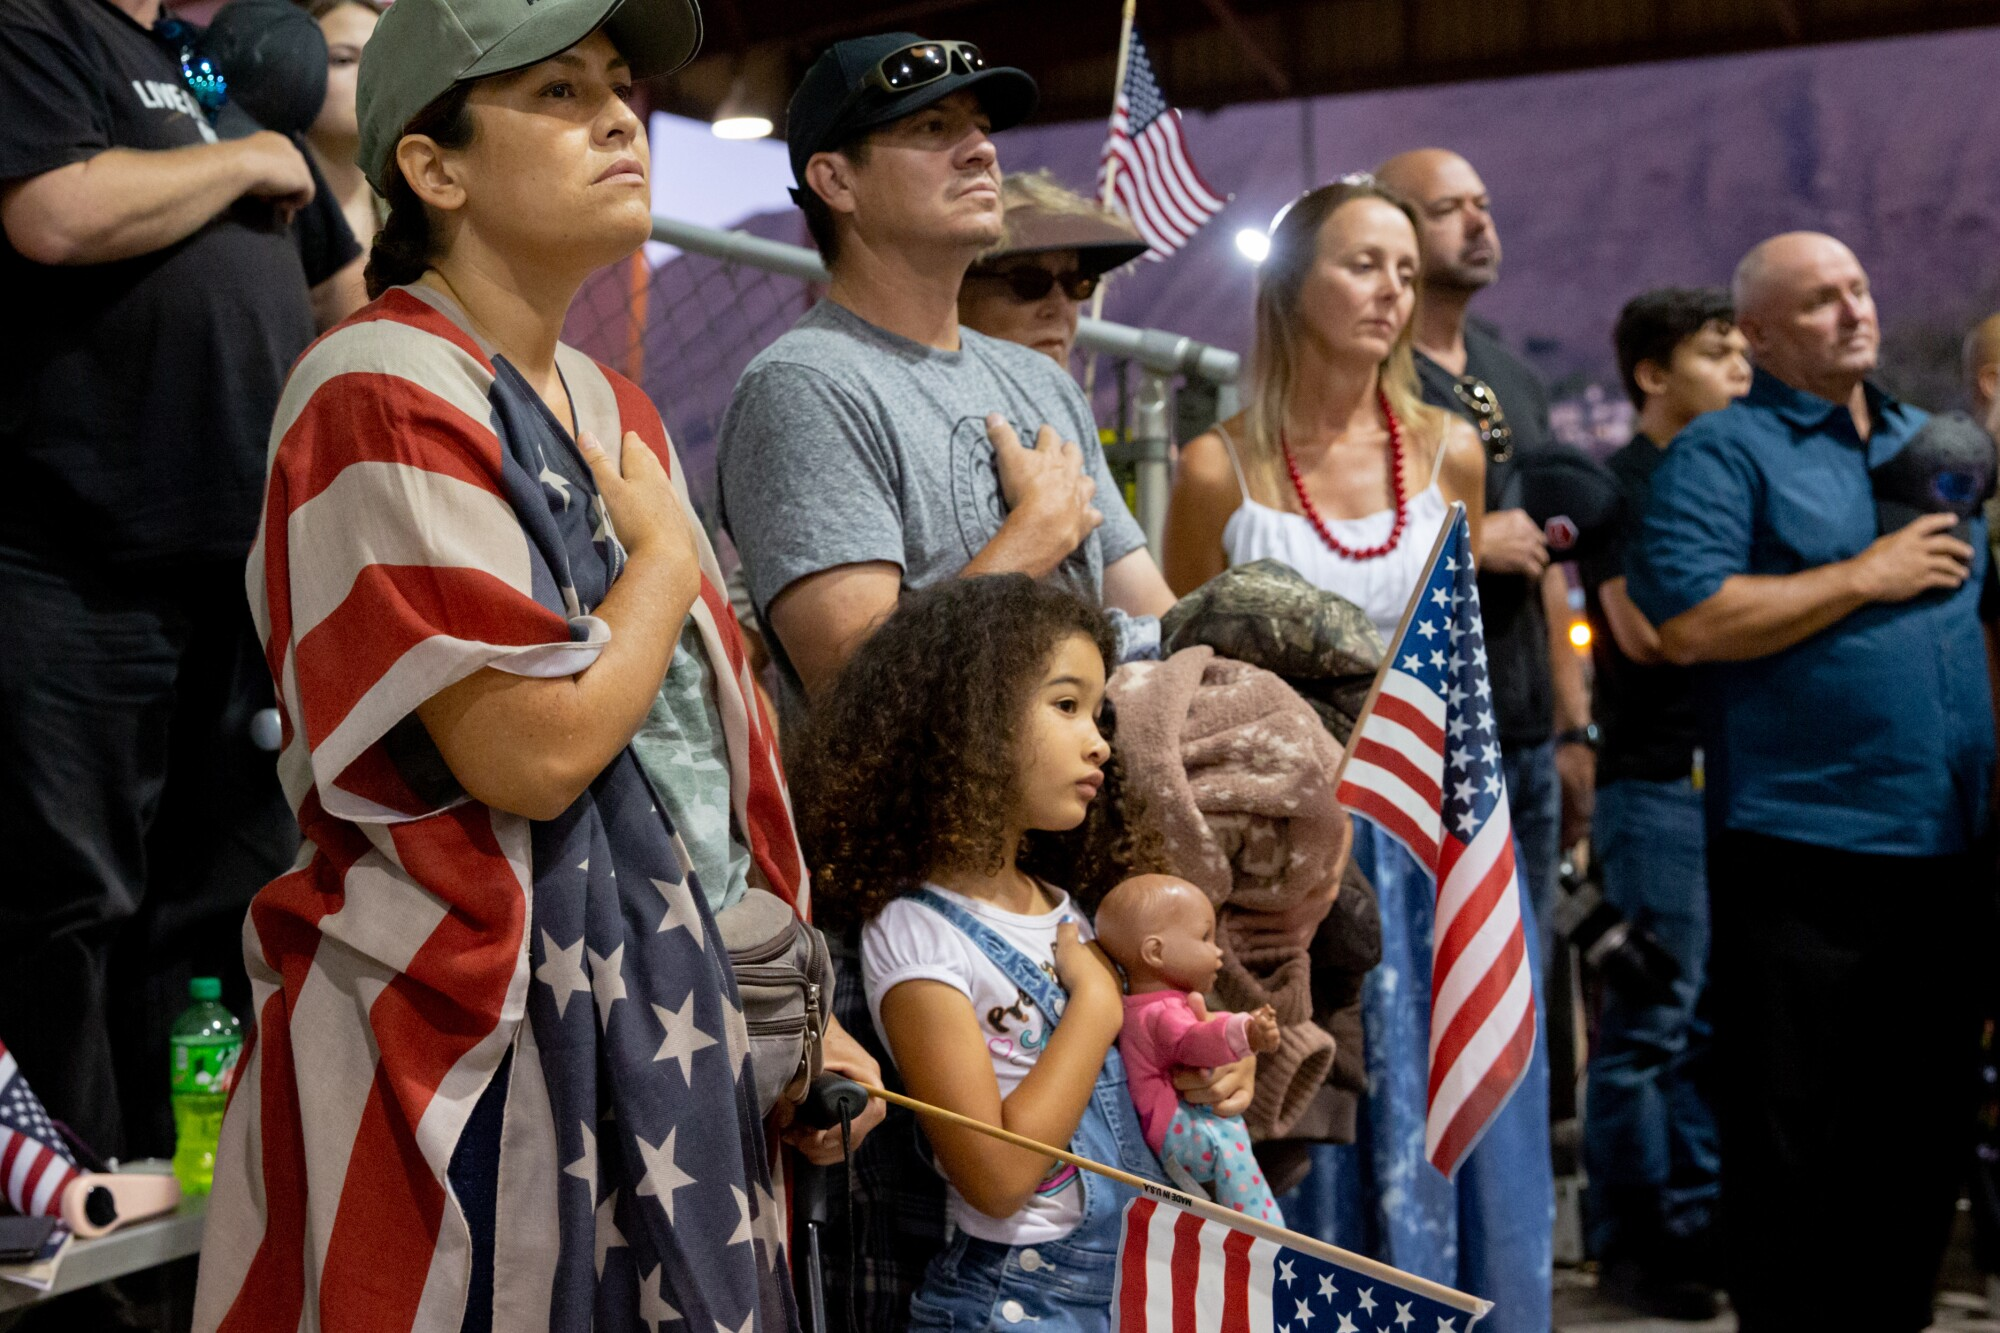 Malina Shaw says the pledge of allegiance with her family during a vigil